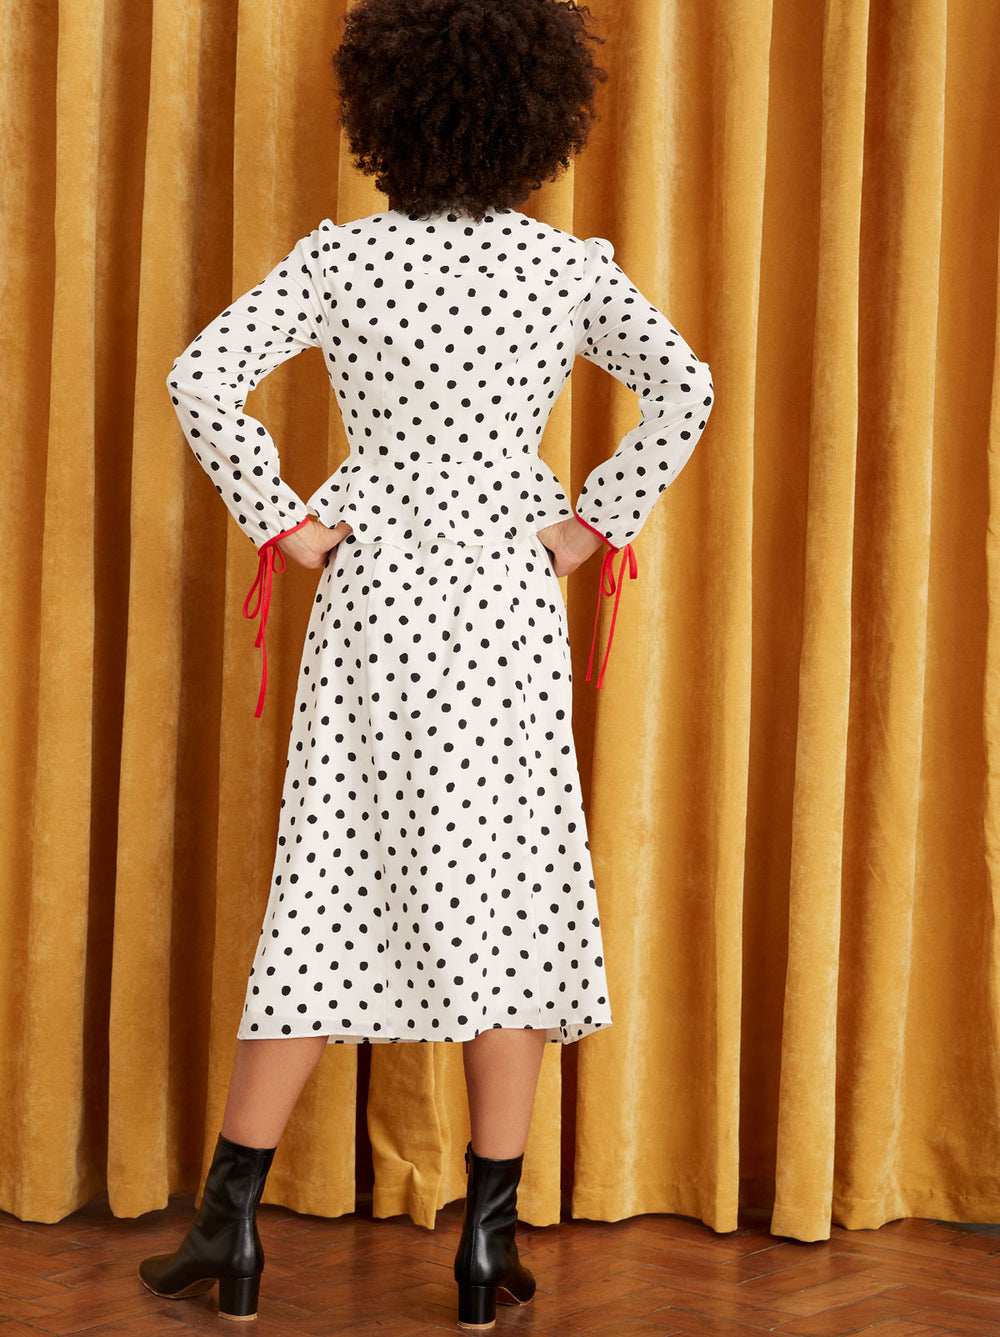 Lana White Polka Dot Dress by KITRI Studio